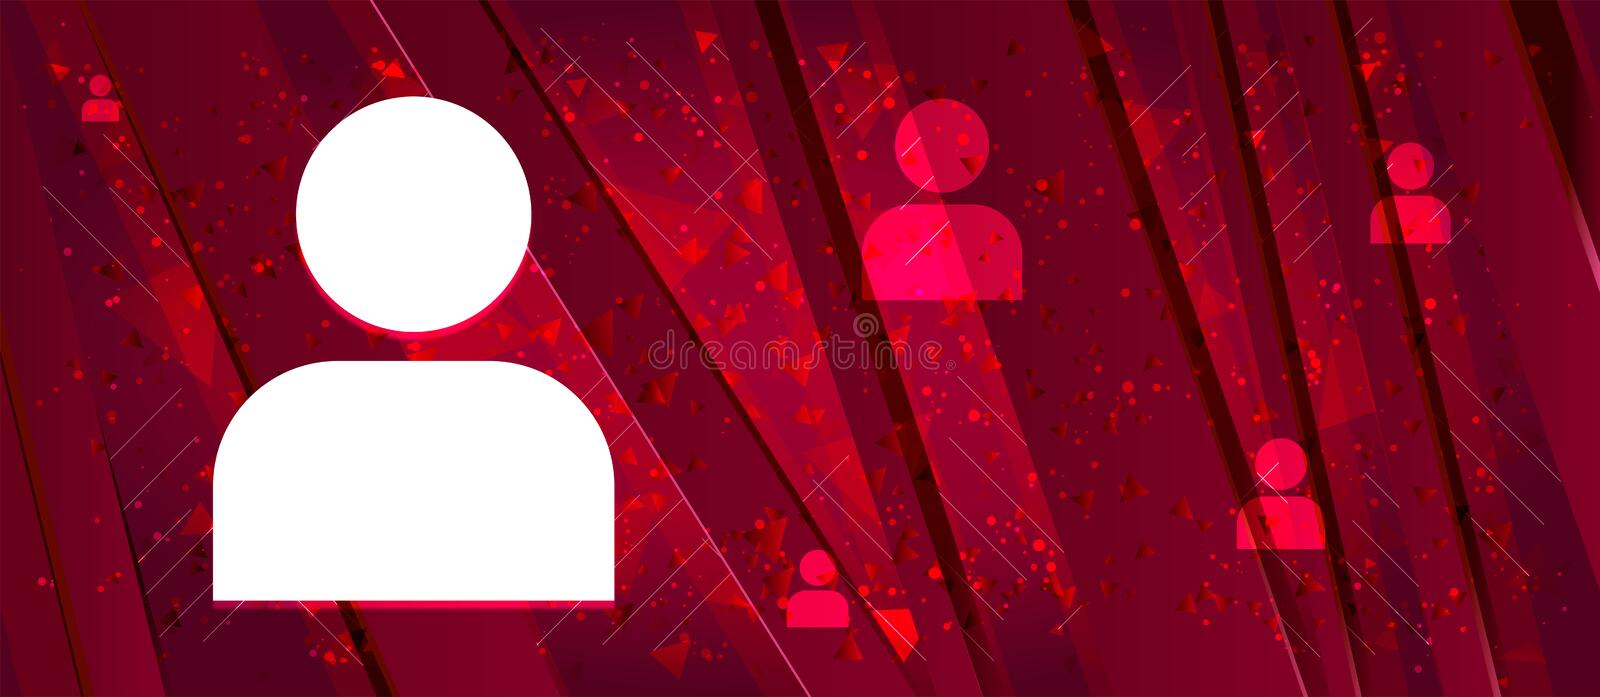 User profile icon Abstract design bright red banner background. User profile icon isolated on Abstract design bright red banner background royalty free illustration